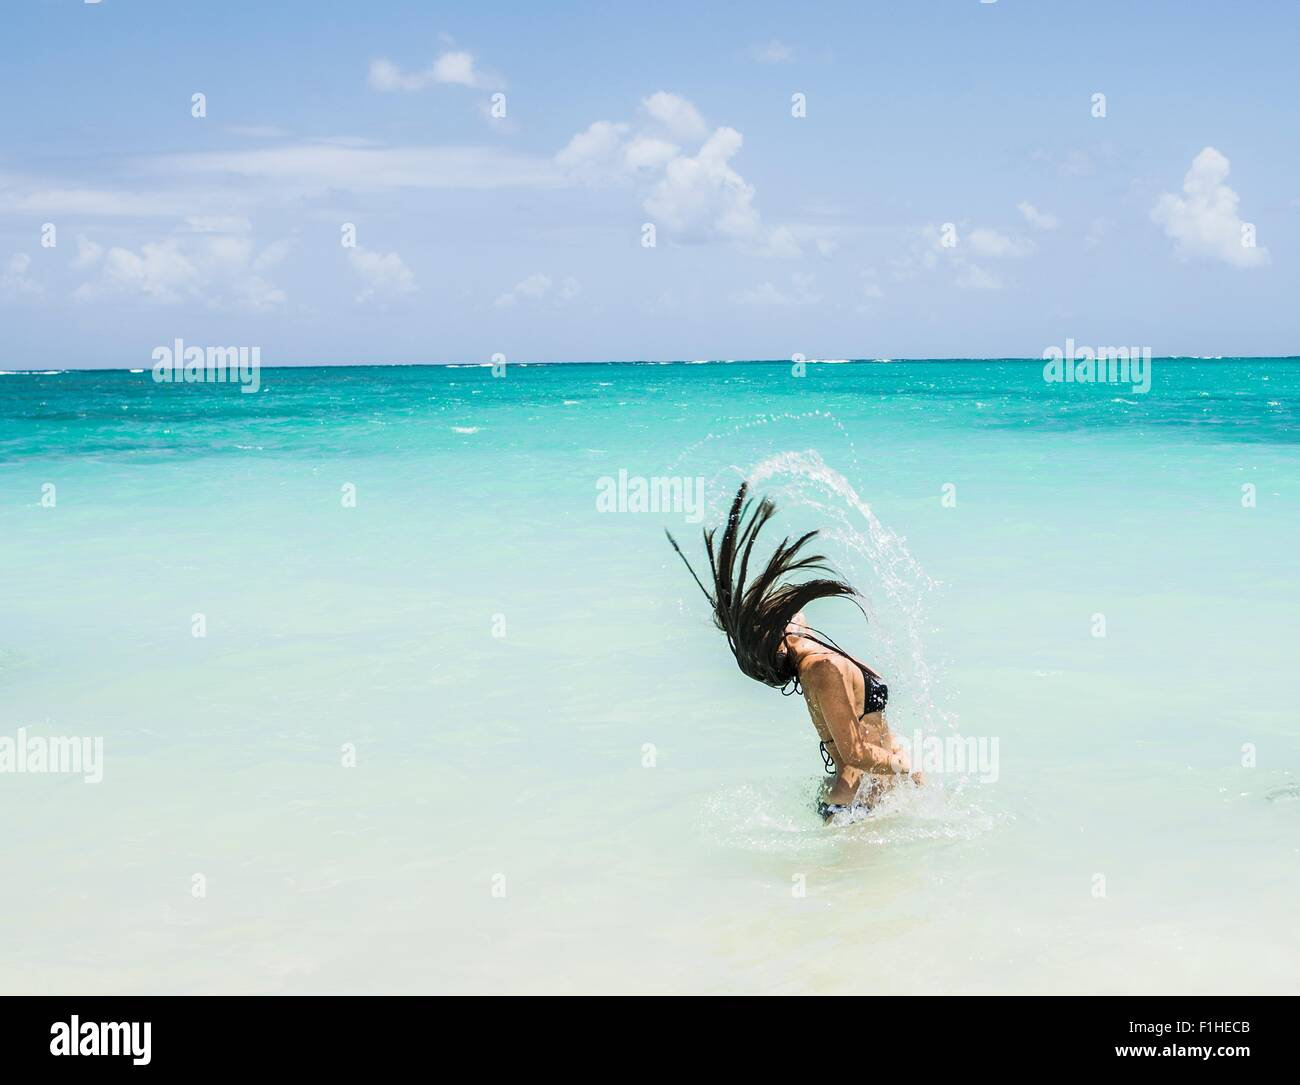 Side view of young woman throwing long wet hair back in sea at Lanikai Beach, Oahu, Hawaii, USA - Stock Image